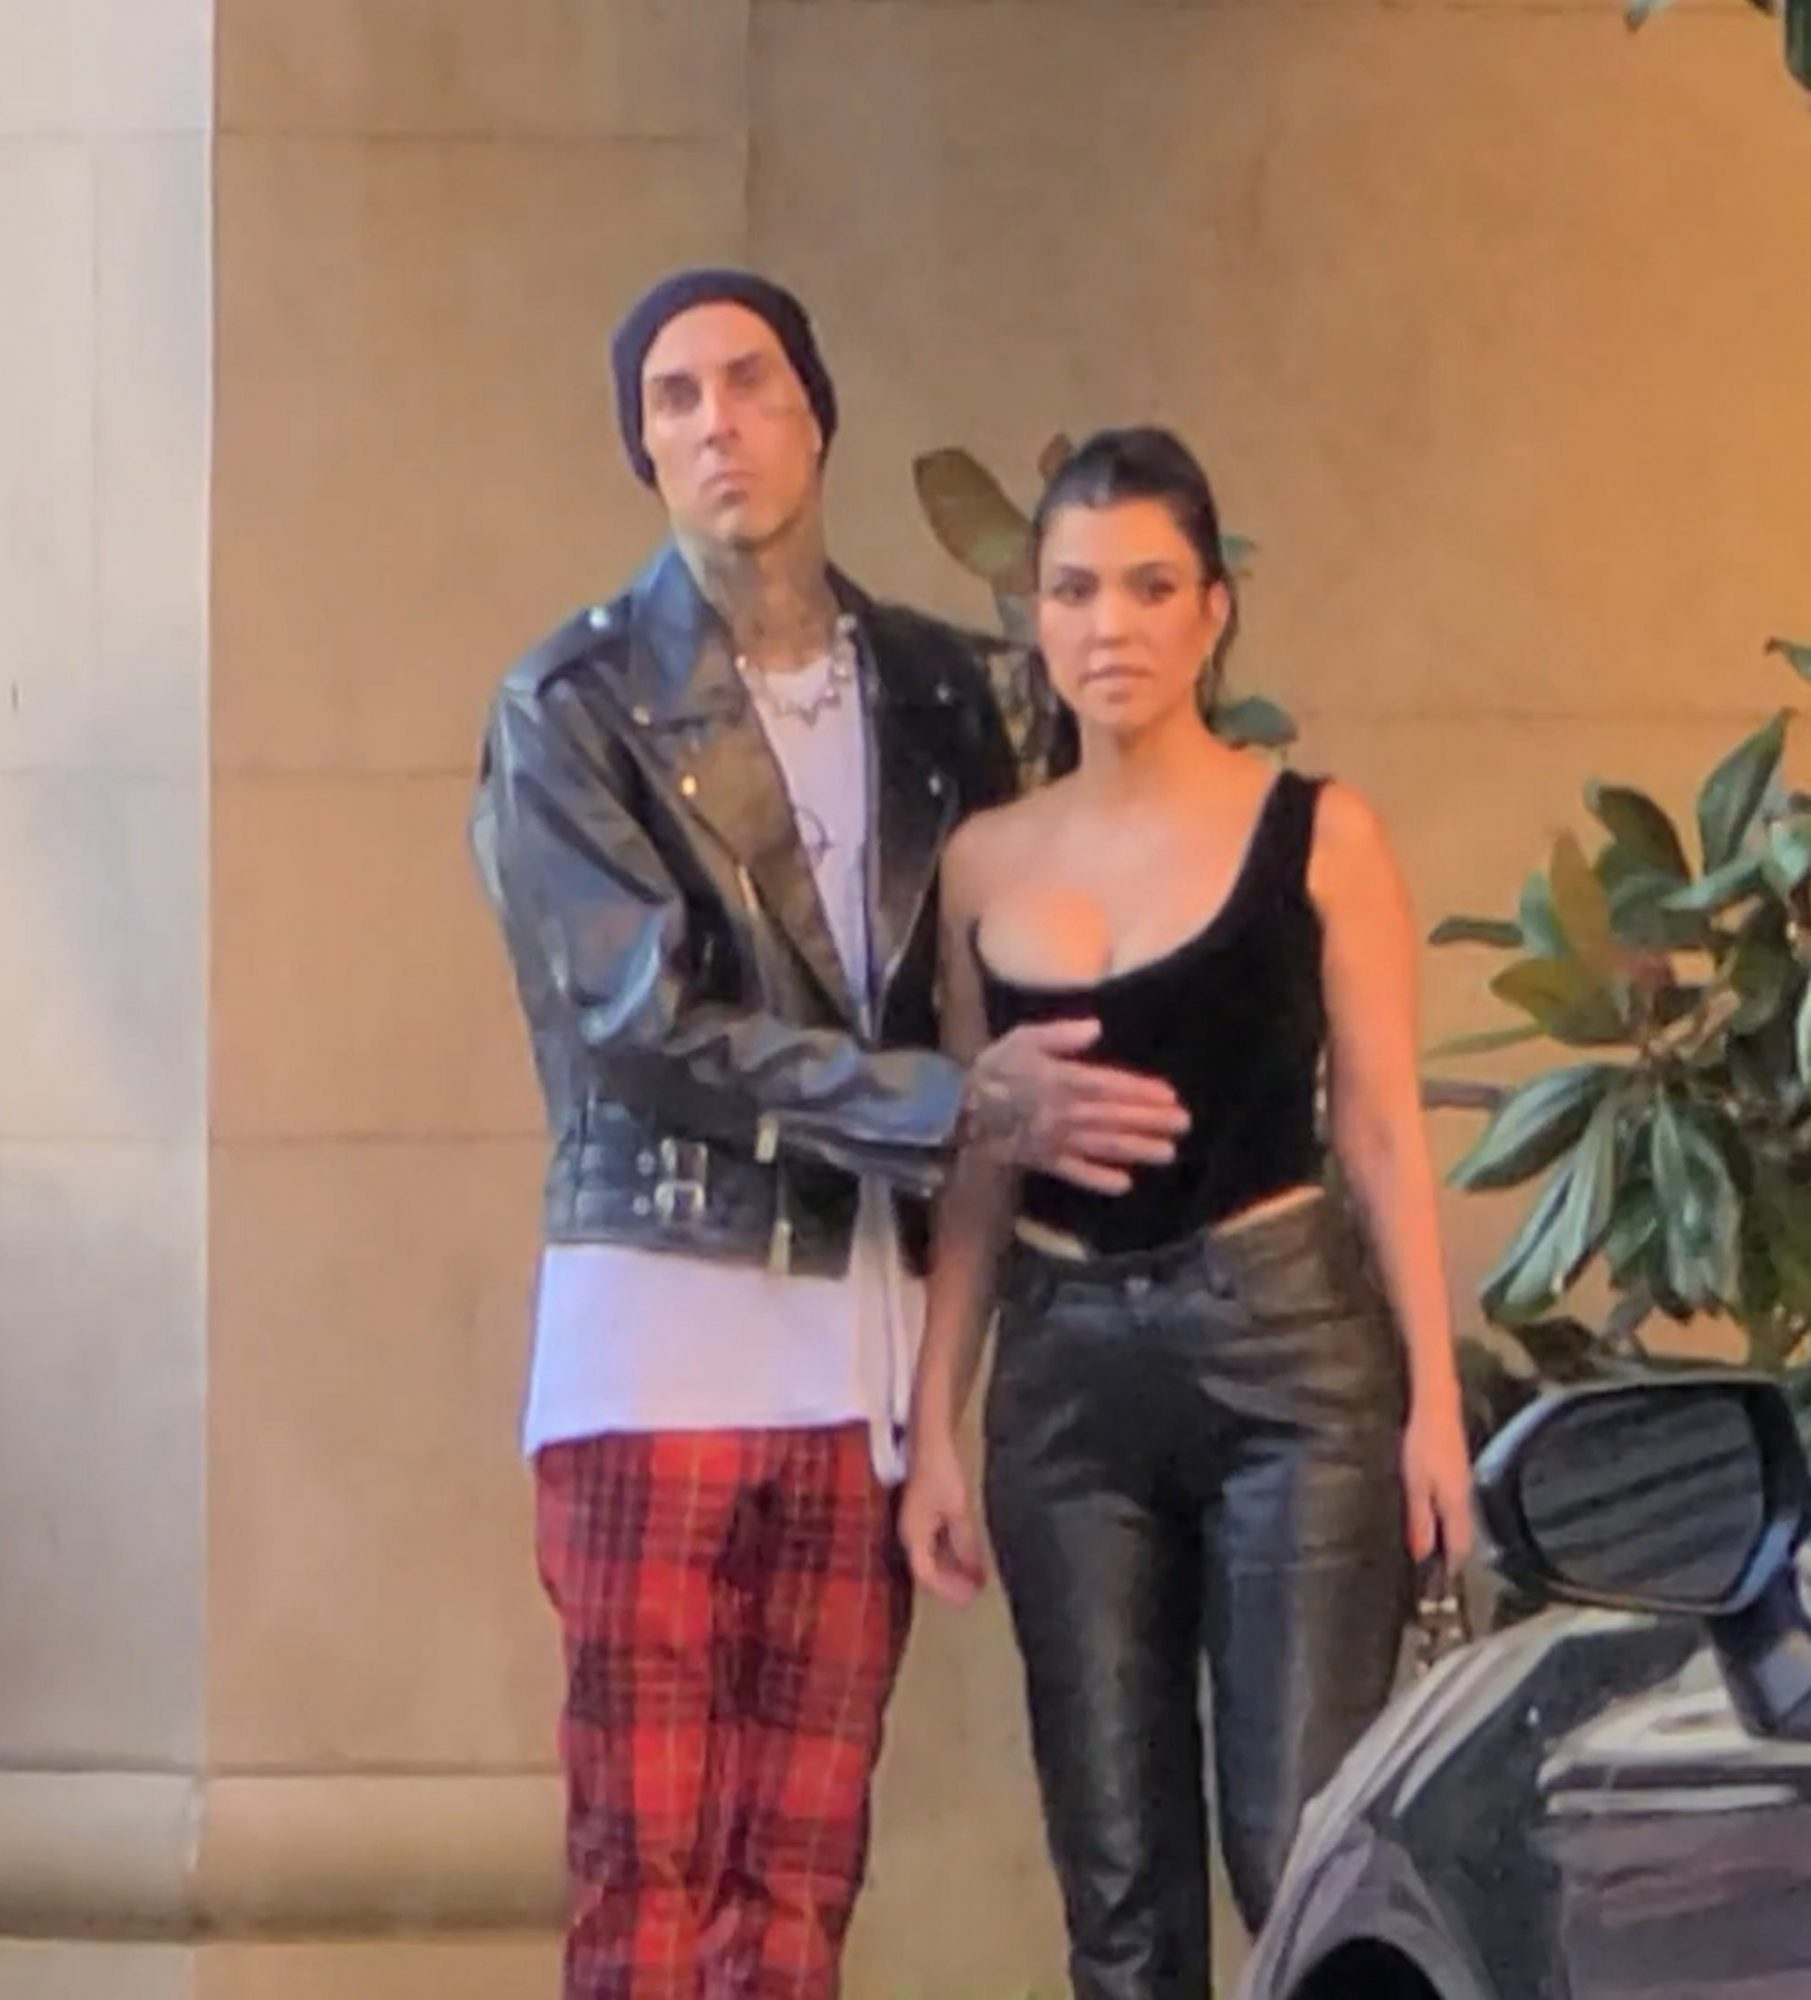 Travis Barker Tenderly Rubs Kourtney's Belly, Is He Giving Us Some Kind of Clue?